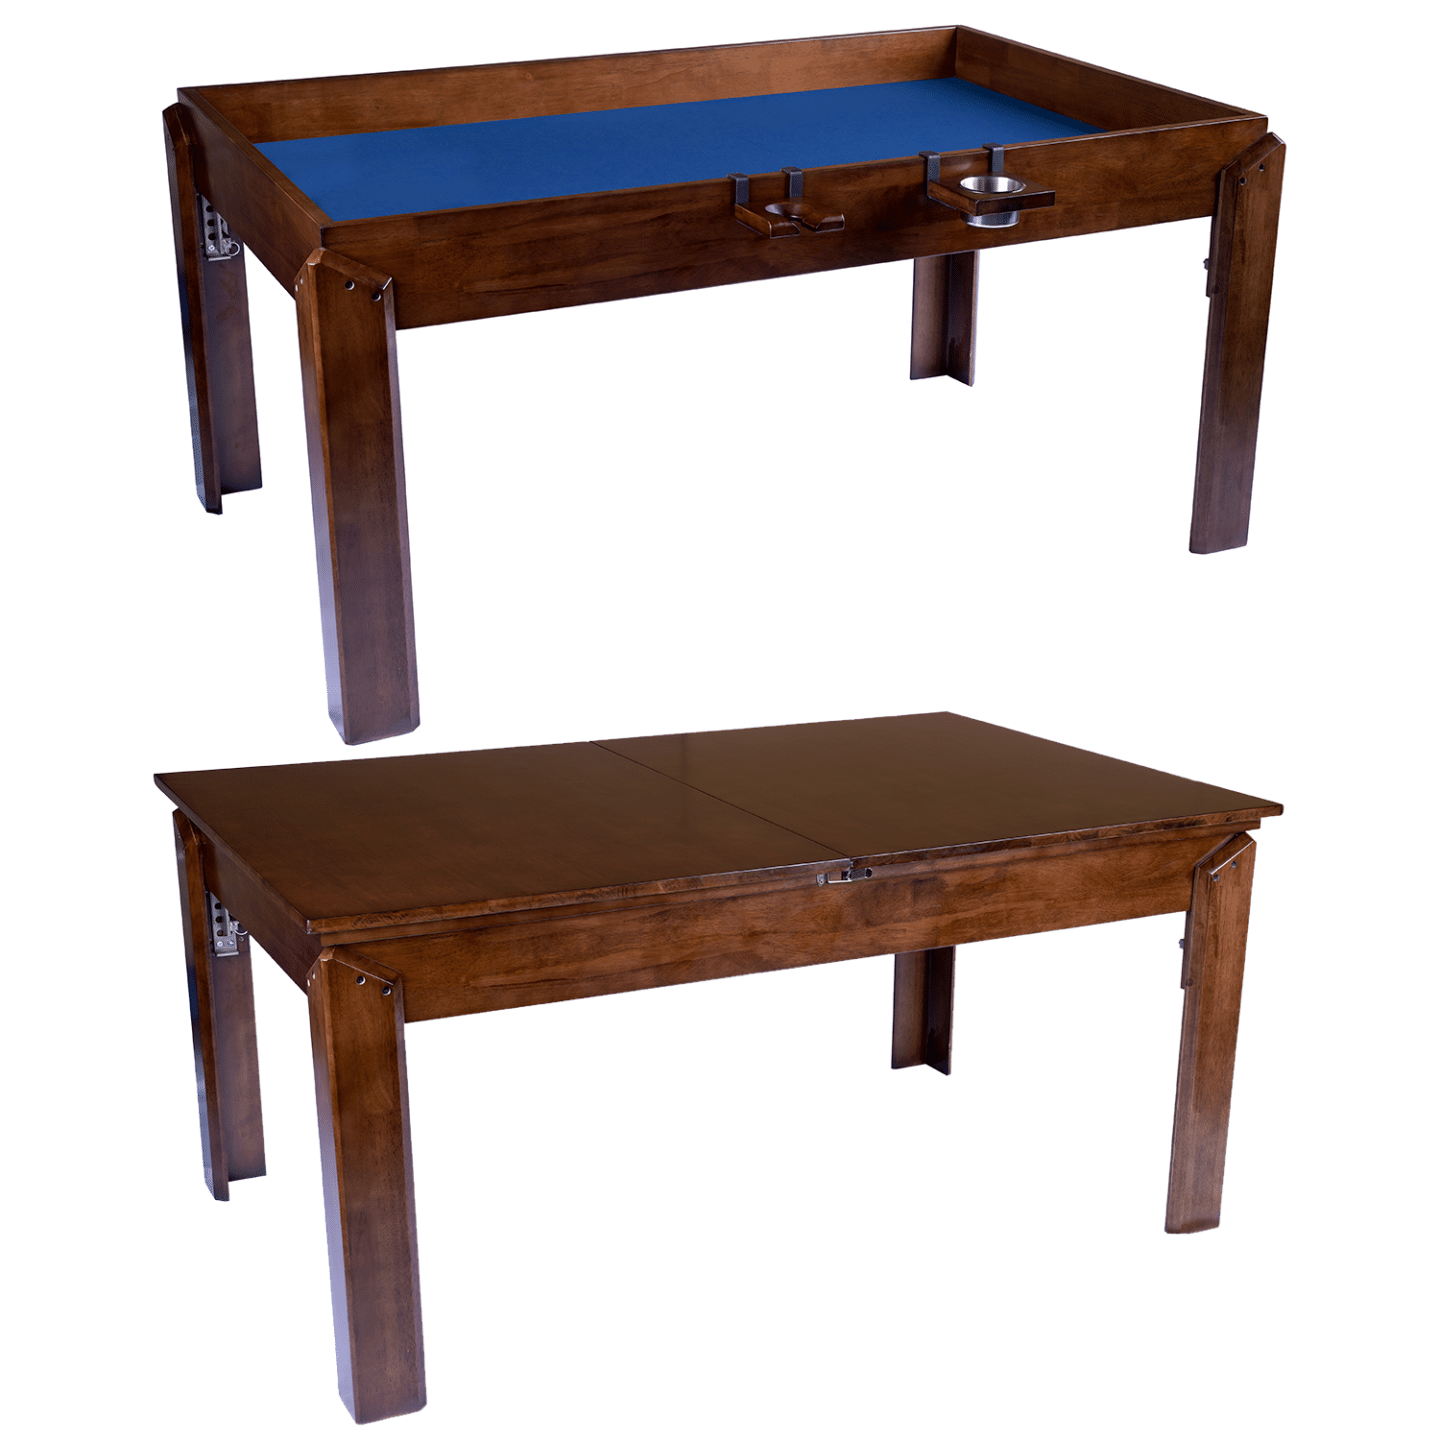 NEW Board Gaming Tables Tables & Accessories Coming Soon!